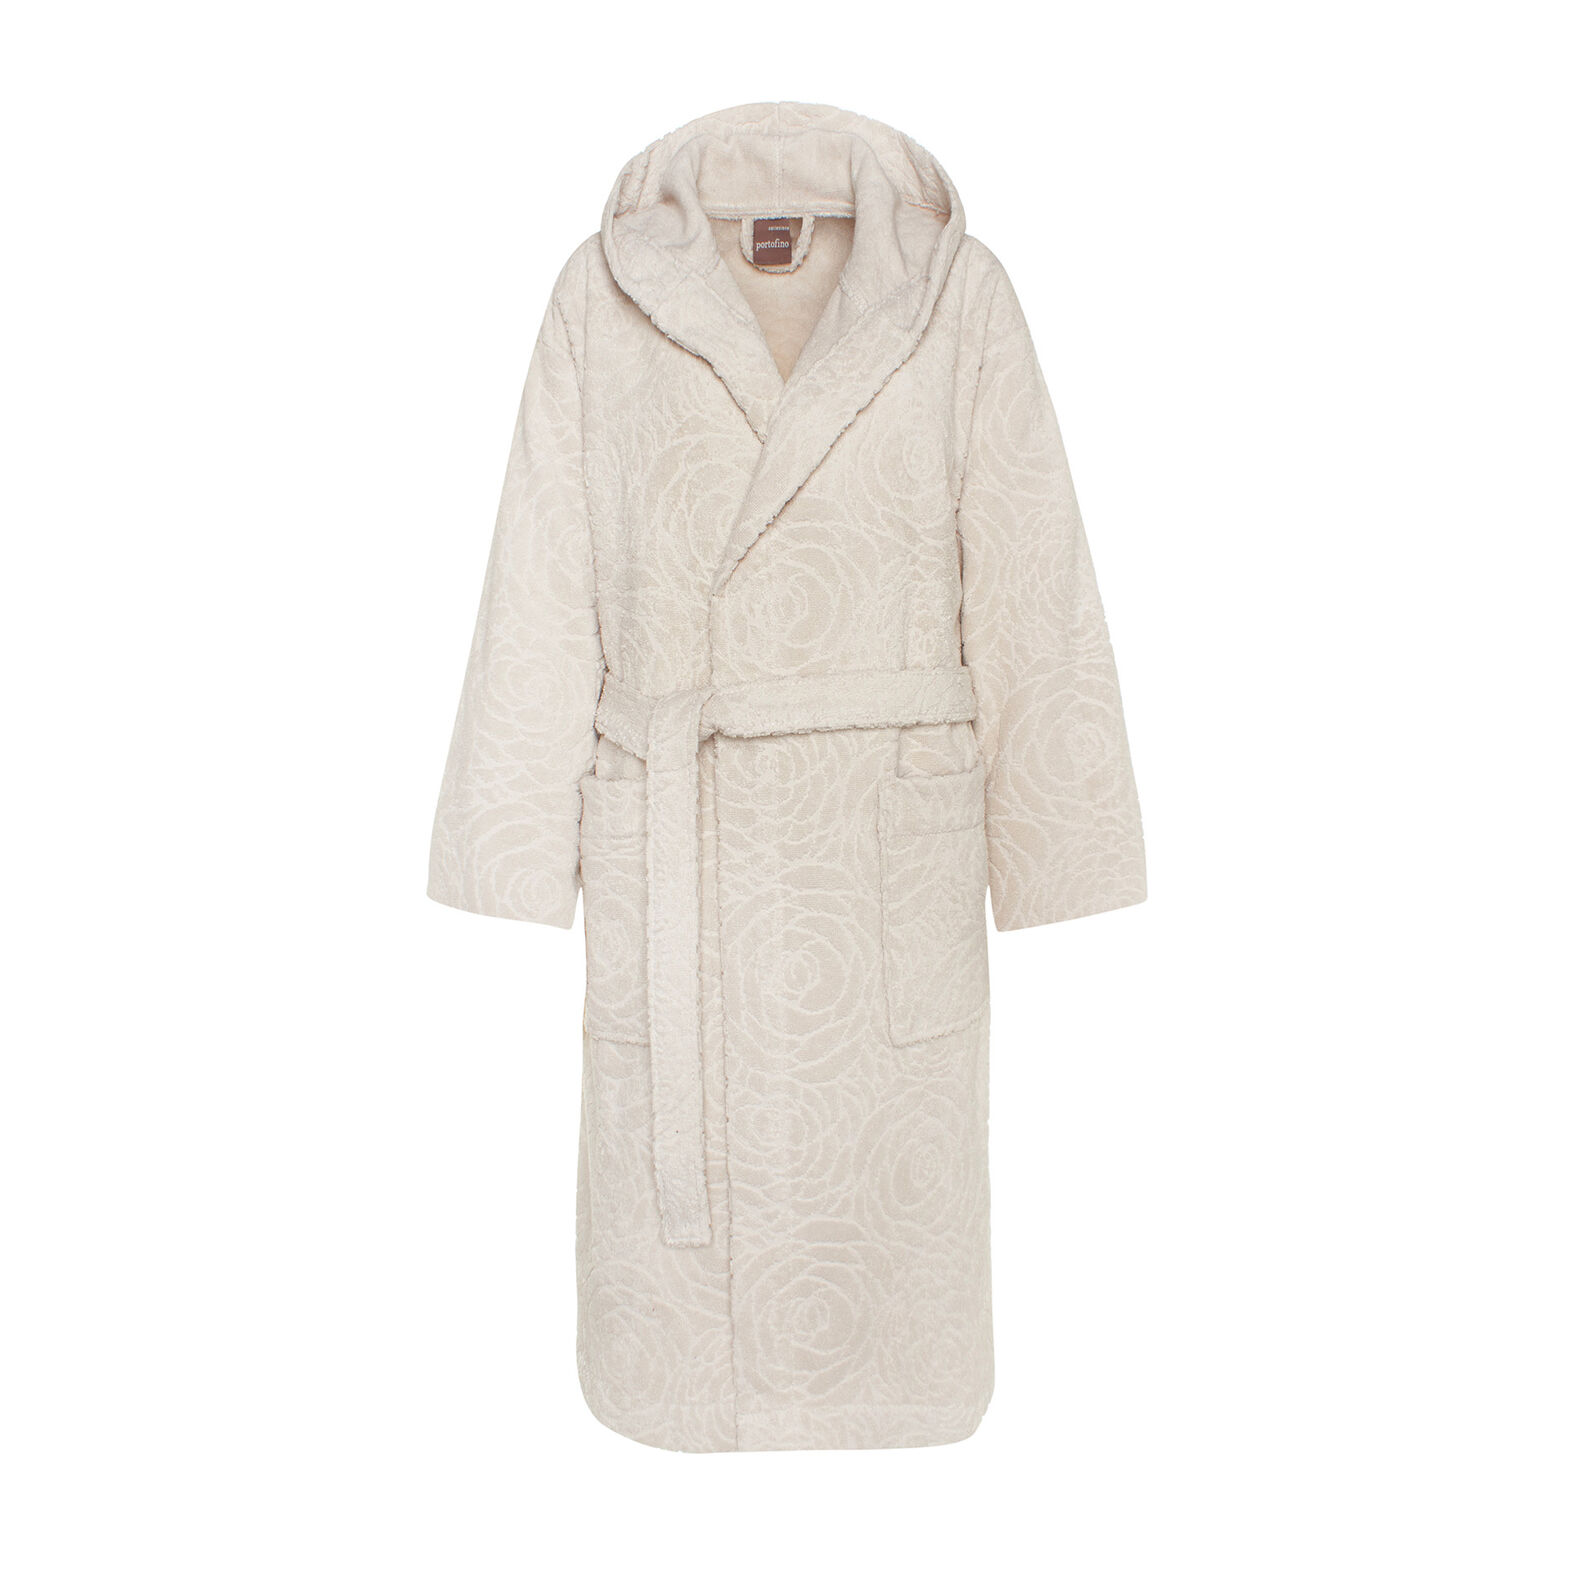 Portofino 100% cotton terry bathrobe with English roses